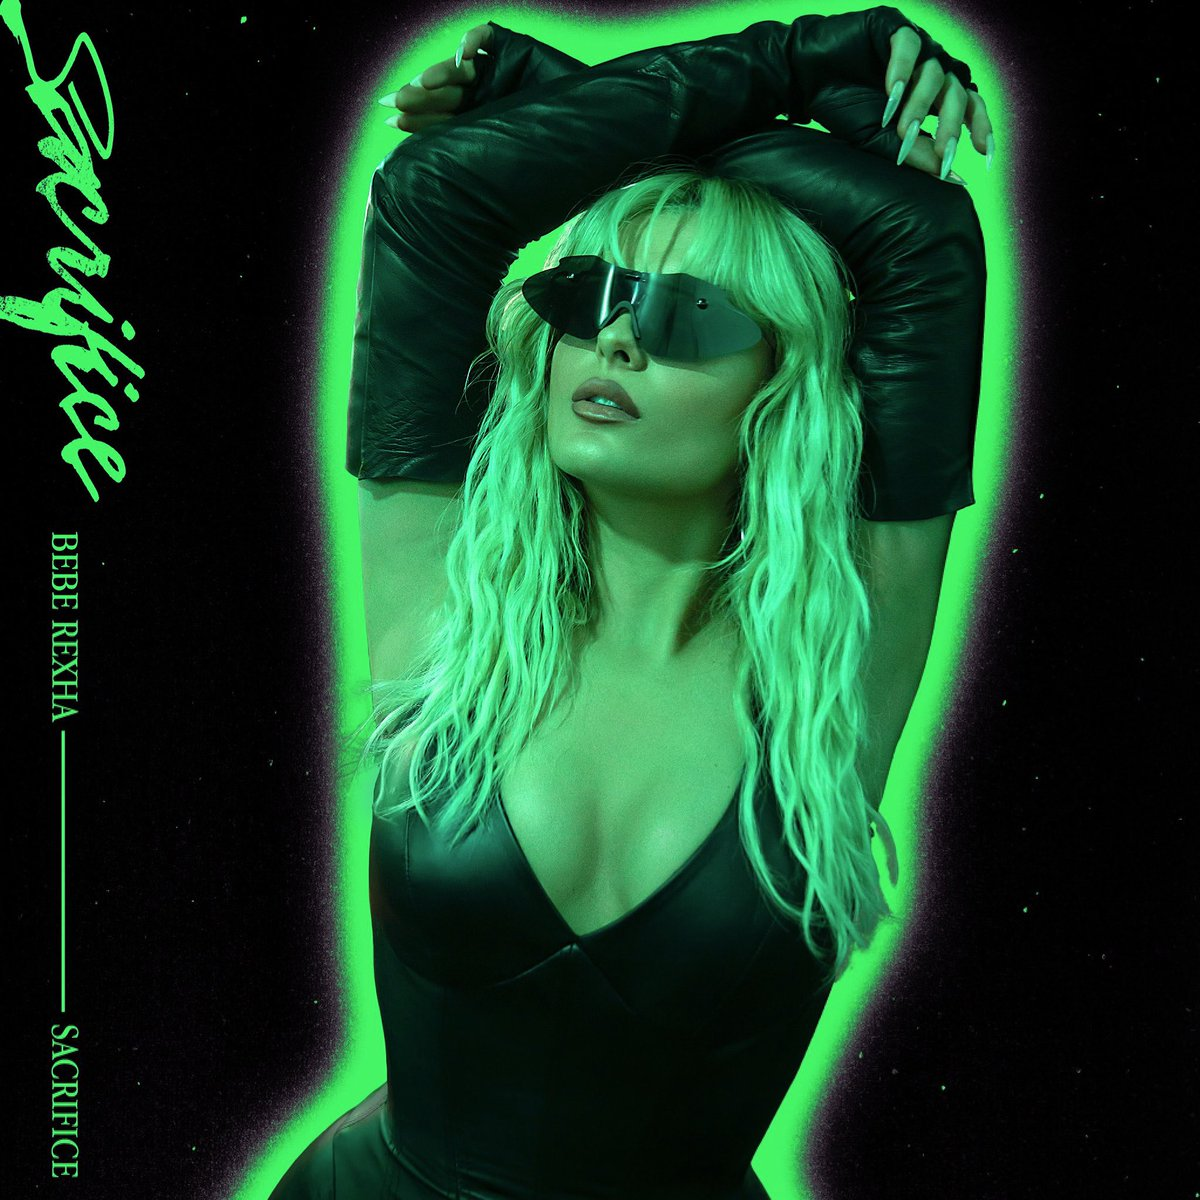 She's baaaaaack! @BebeRexha drops new music this week. 'Sacrifice' drops 5 March  - and it's going to be a banger'. Pre-Save the track here and hear it first.